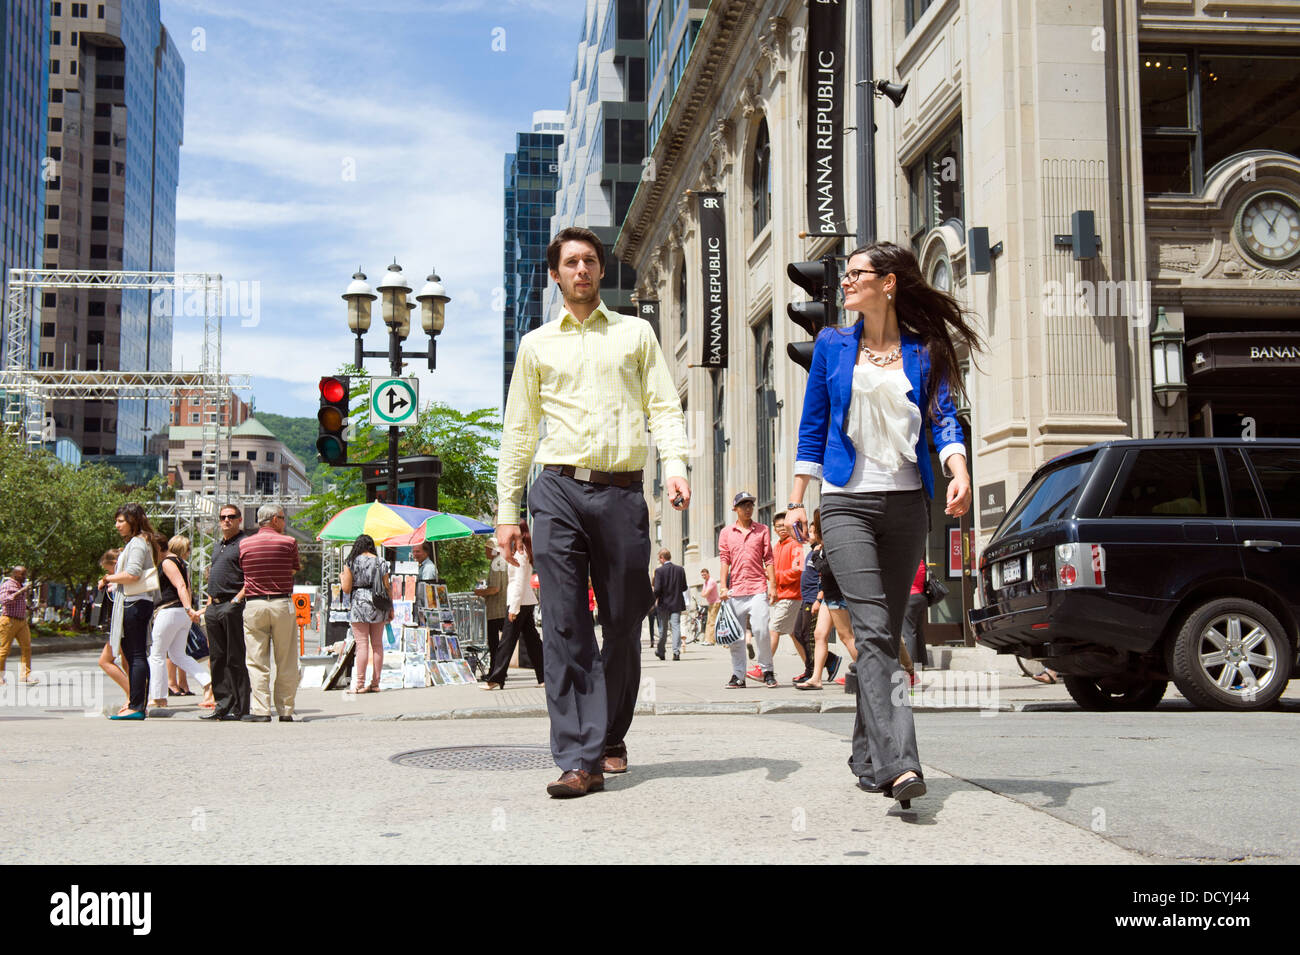 Pedestrians crossing the street, Montreal, province of Quebec, Canada. - Stock Image